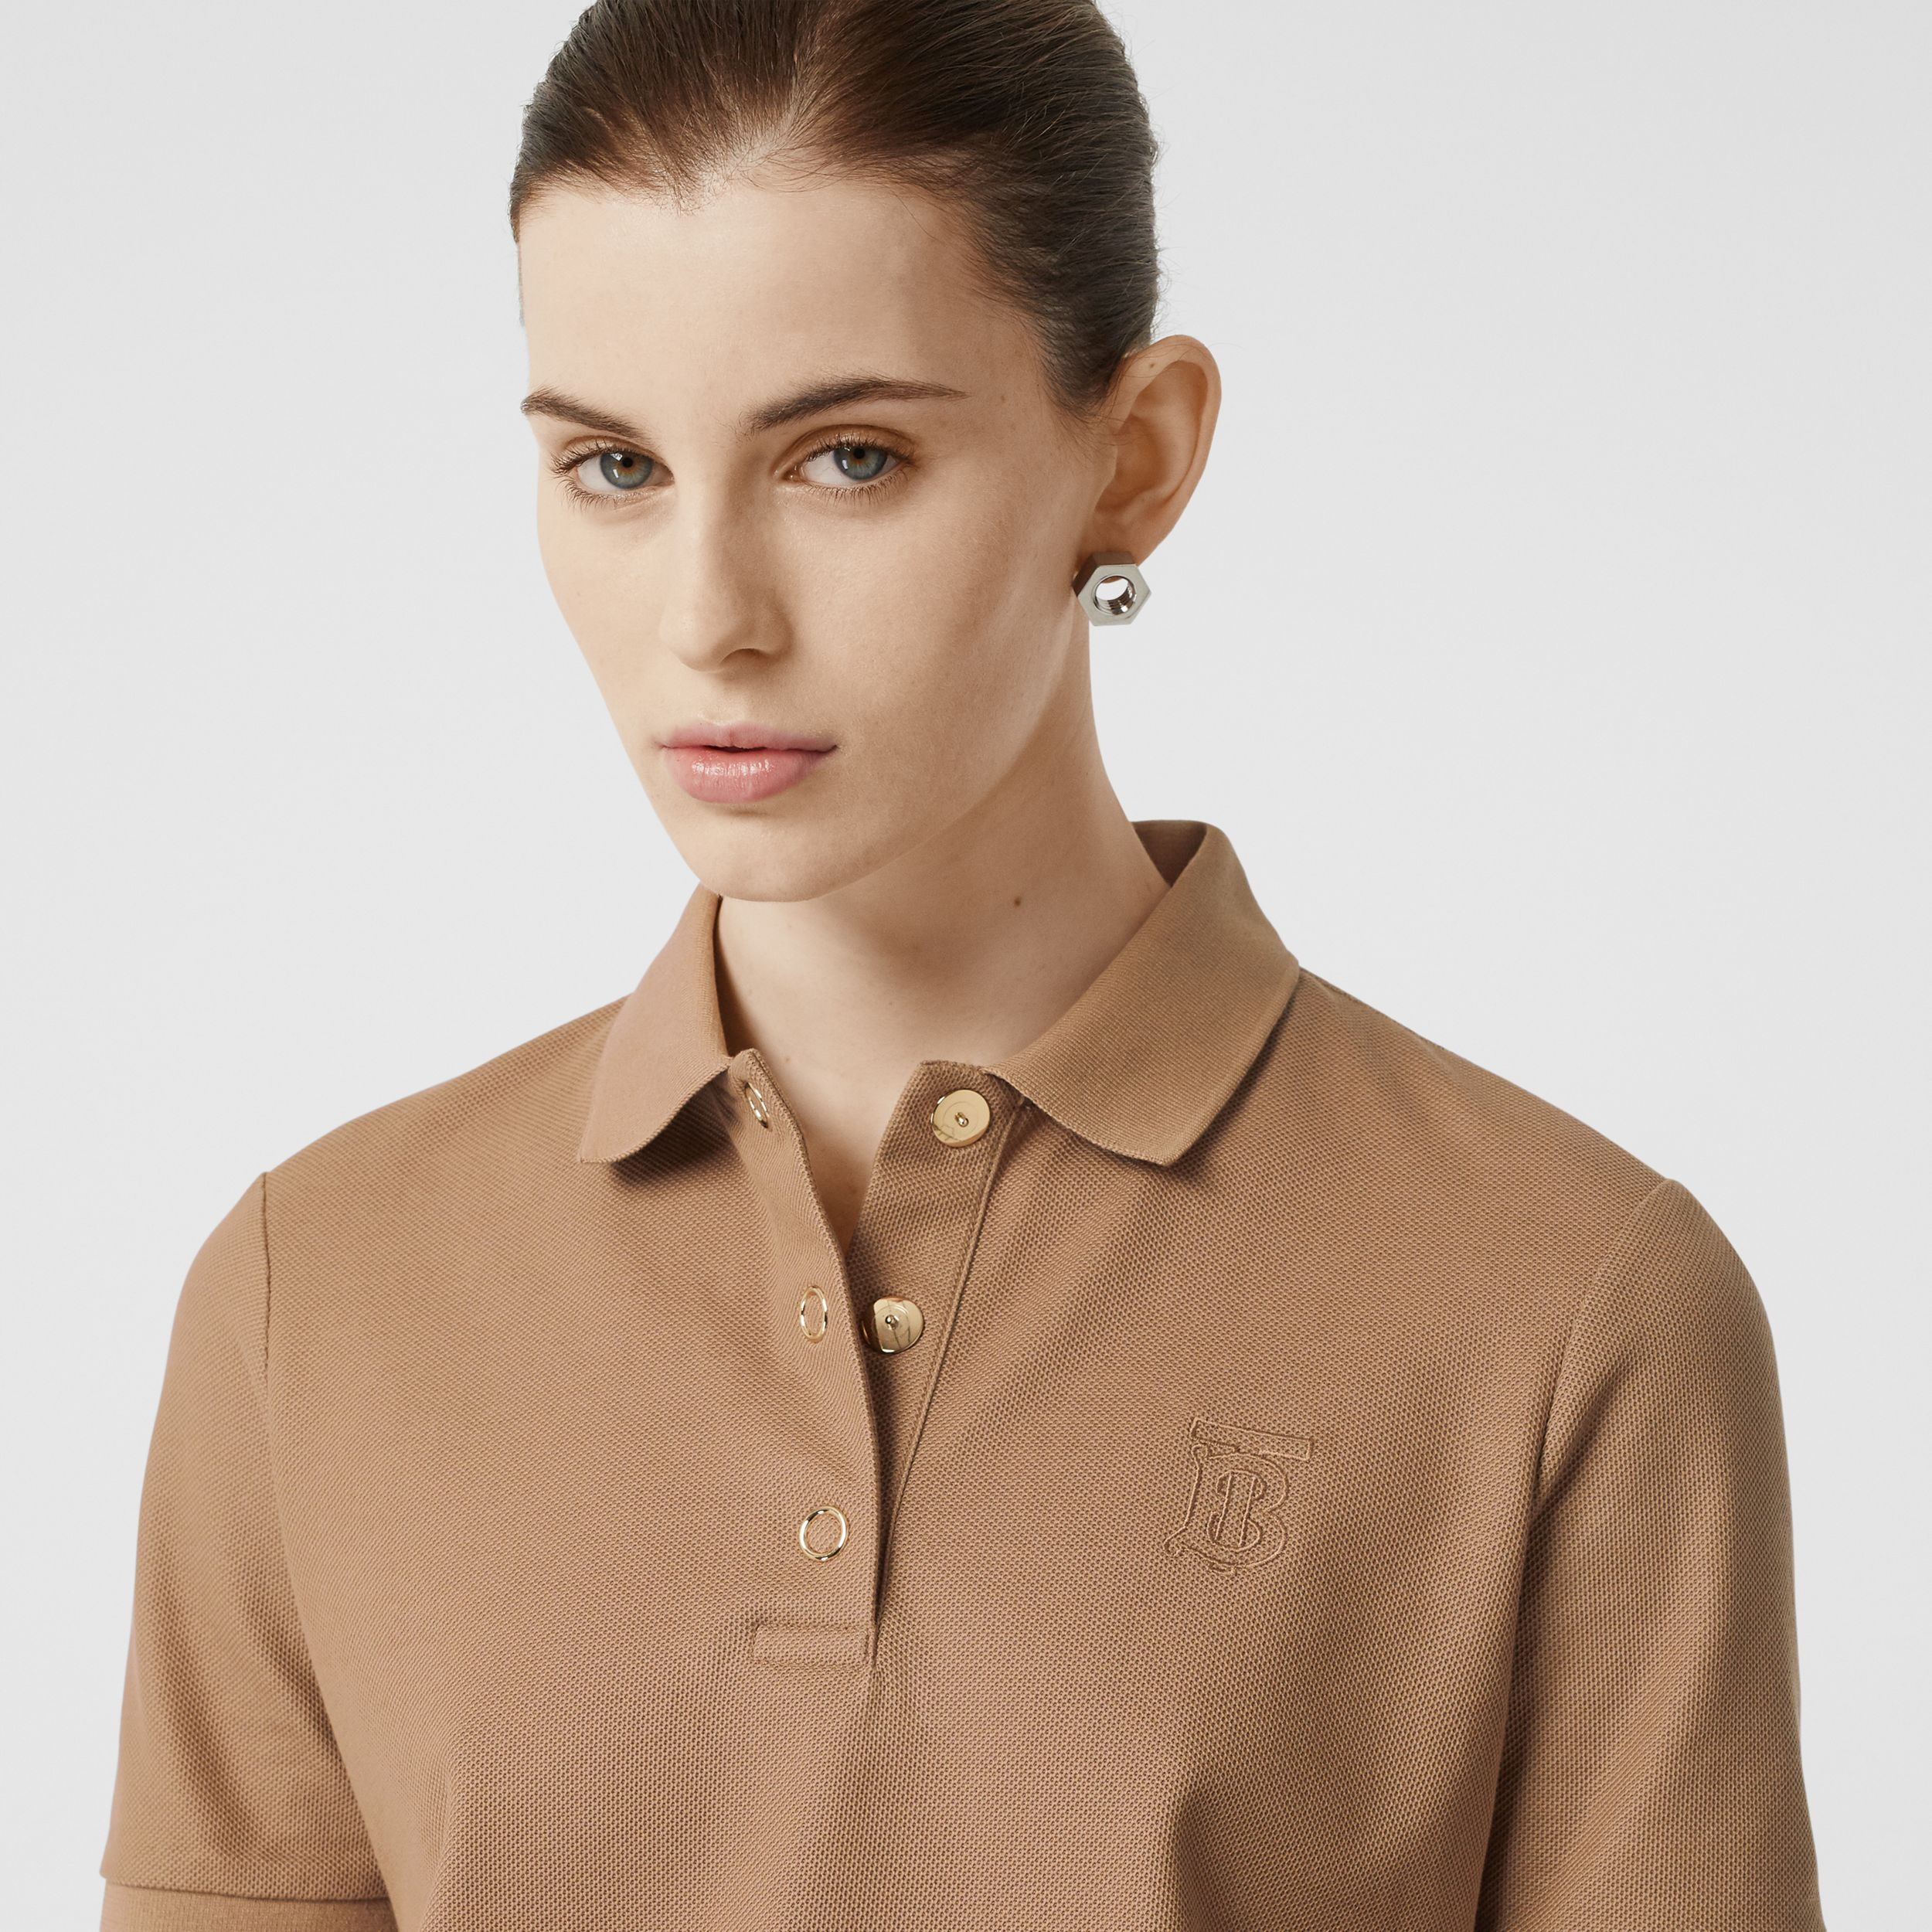 Monogram Motif Cotton Piqué Polo Shirt in Camel - Women | Burberry United Kingdom - 2